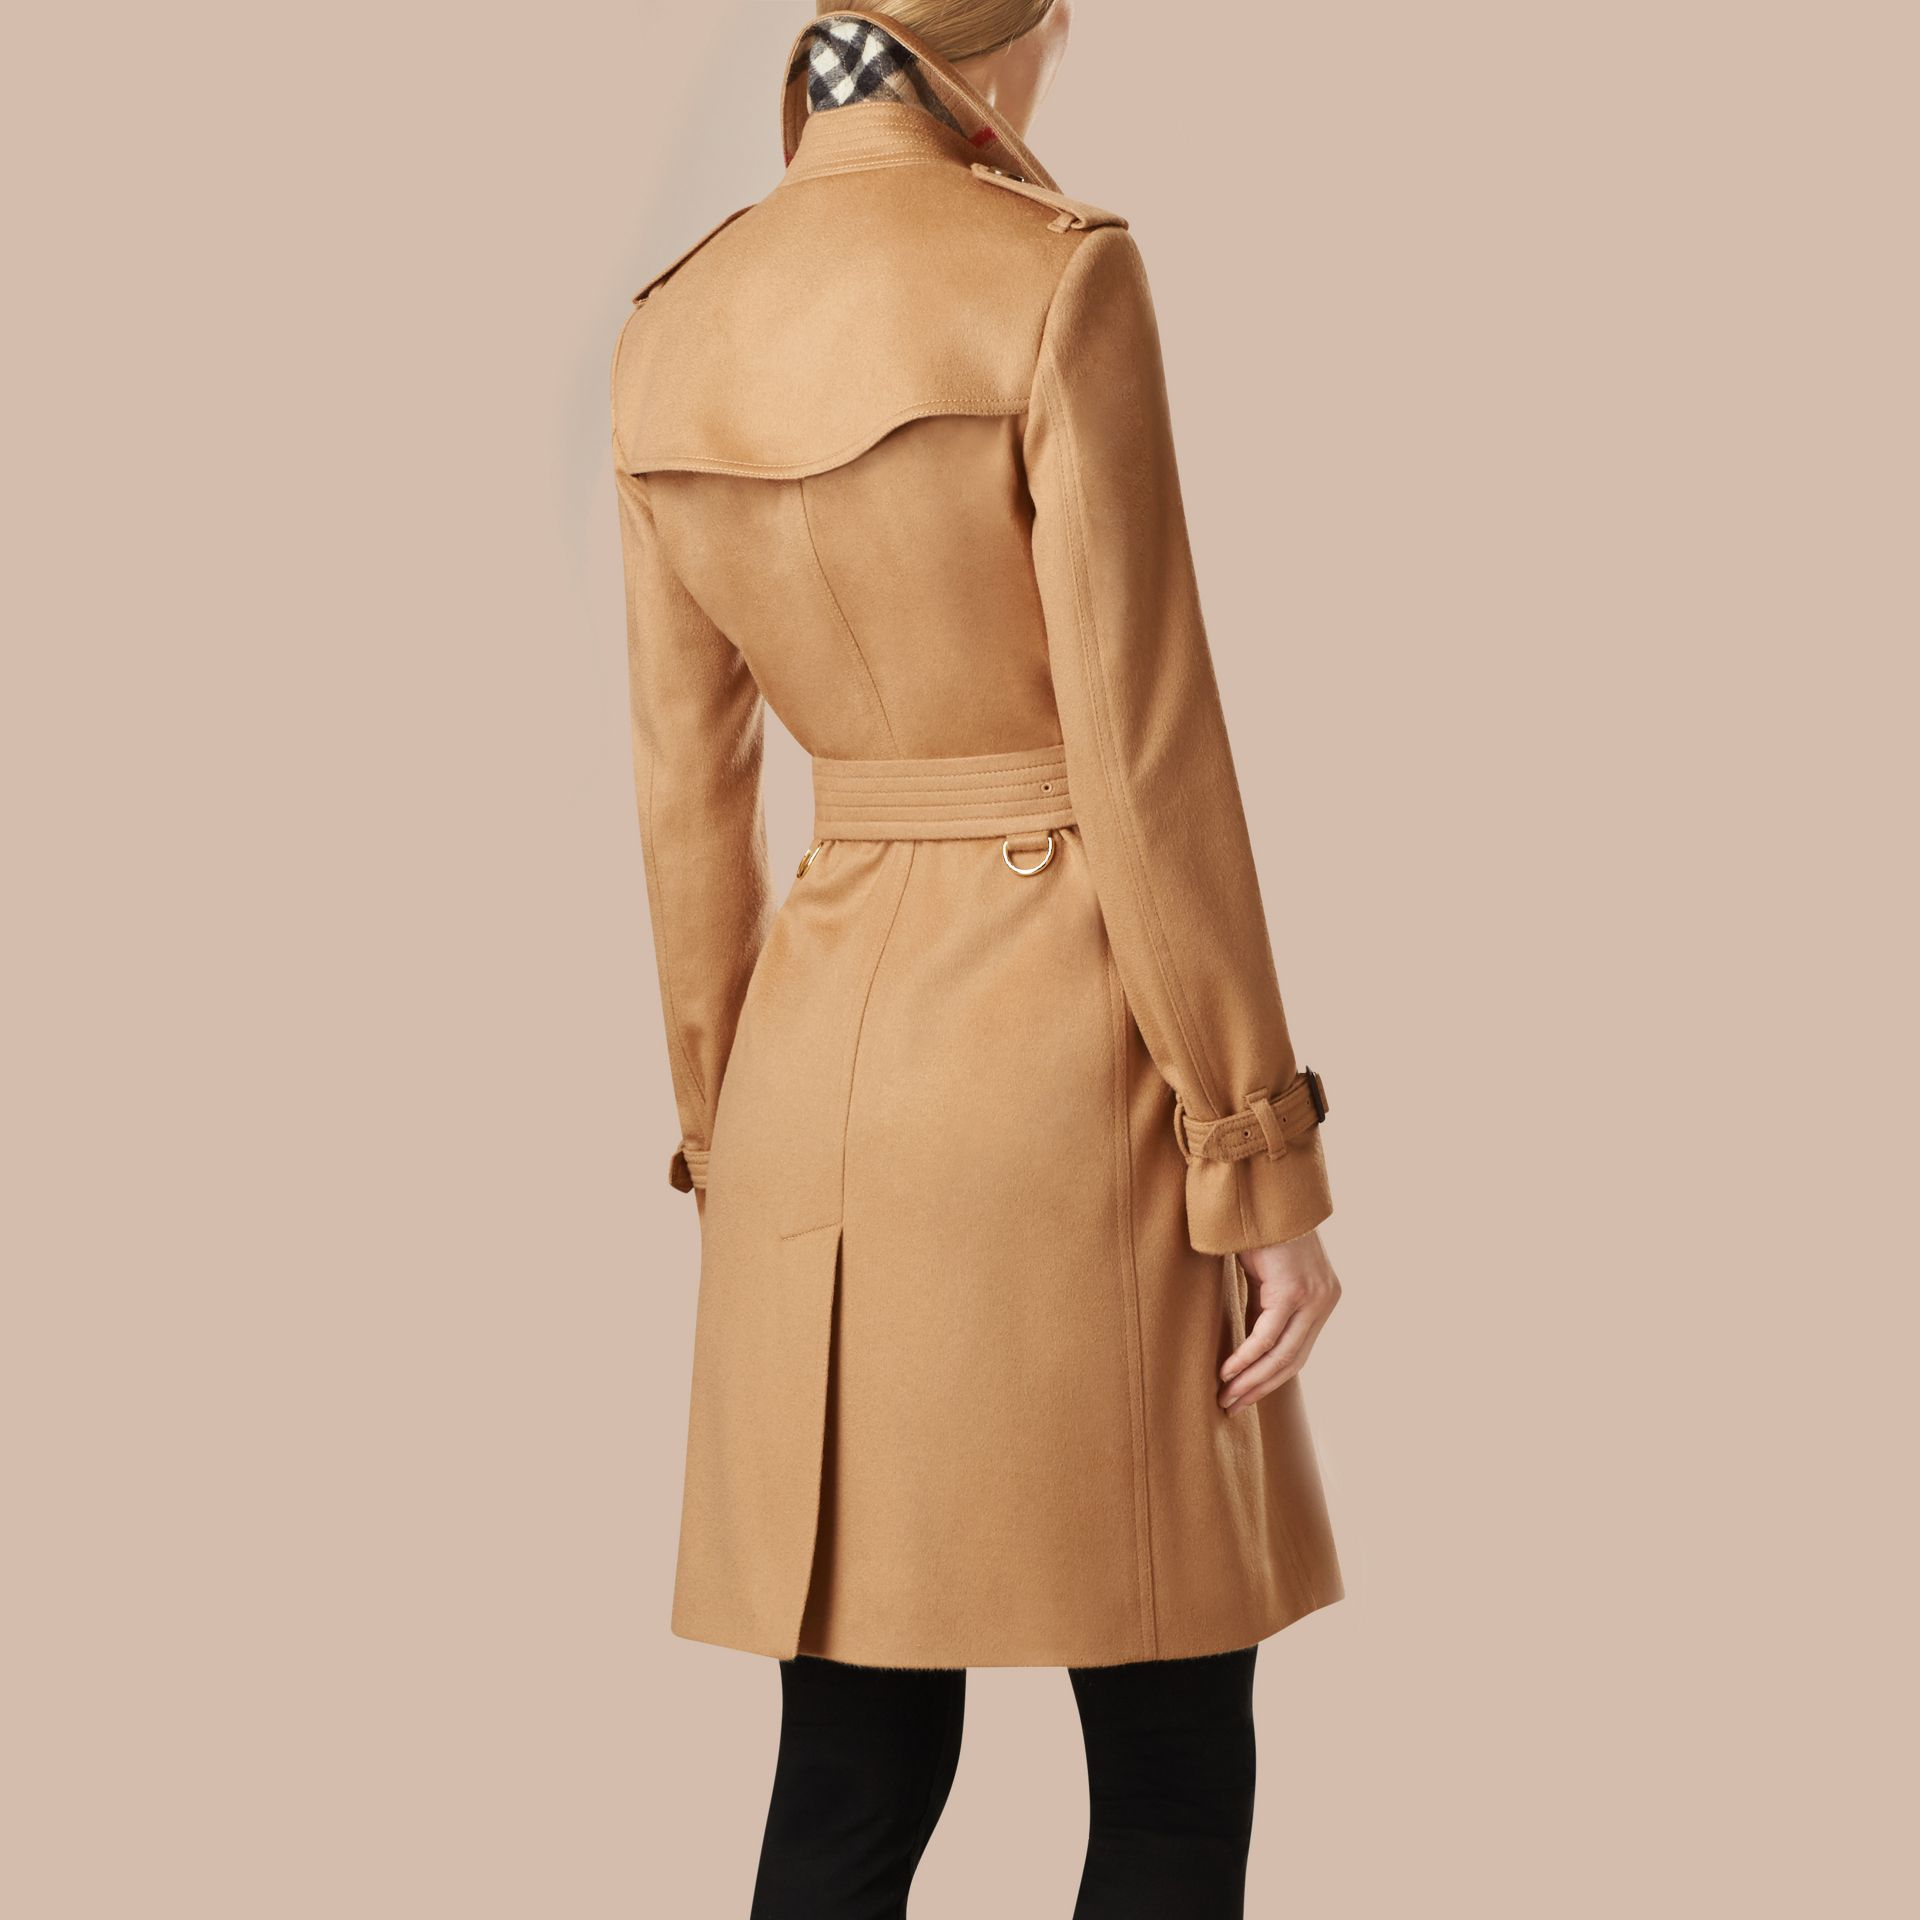 Camel Kensington Fit Cashmere Trench Coat Camel - gallery image 3